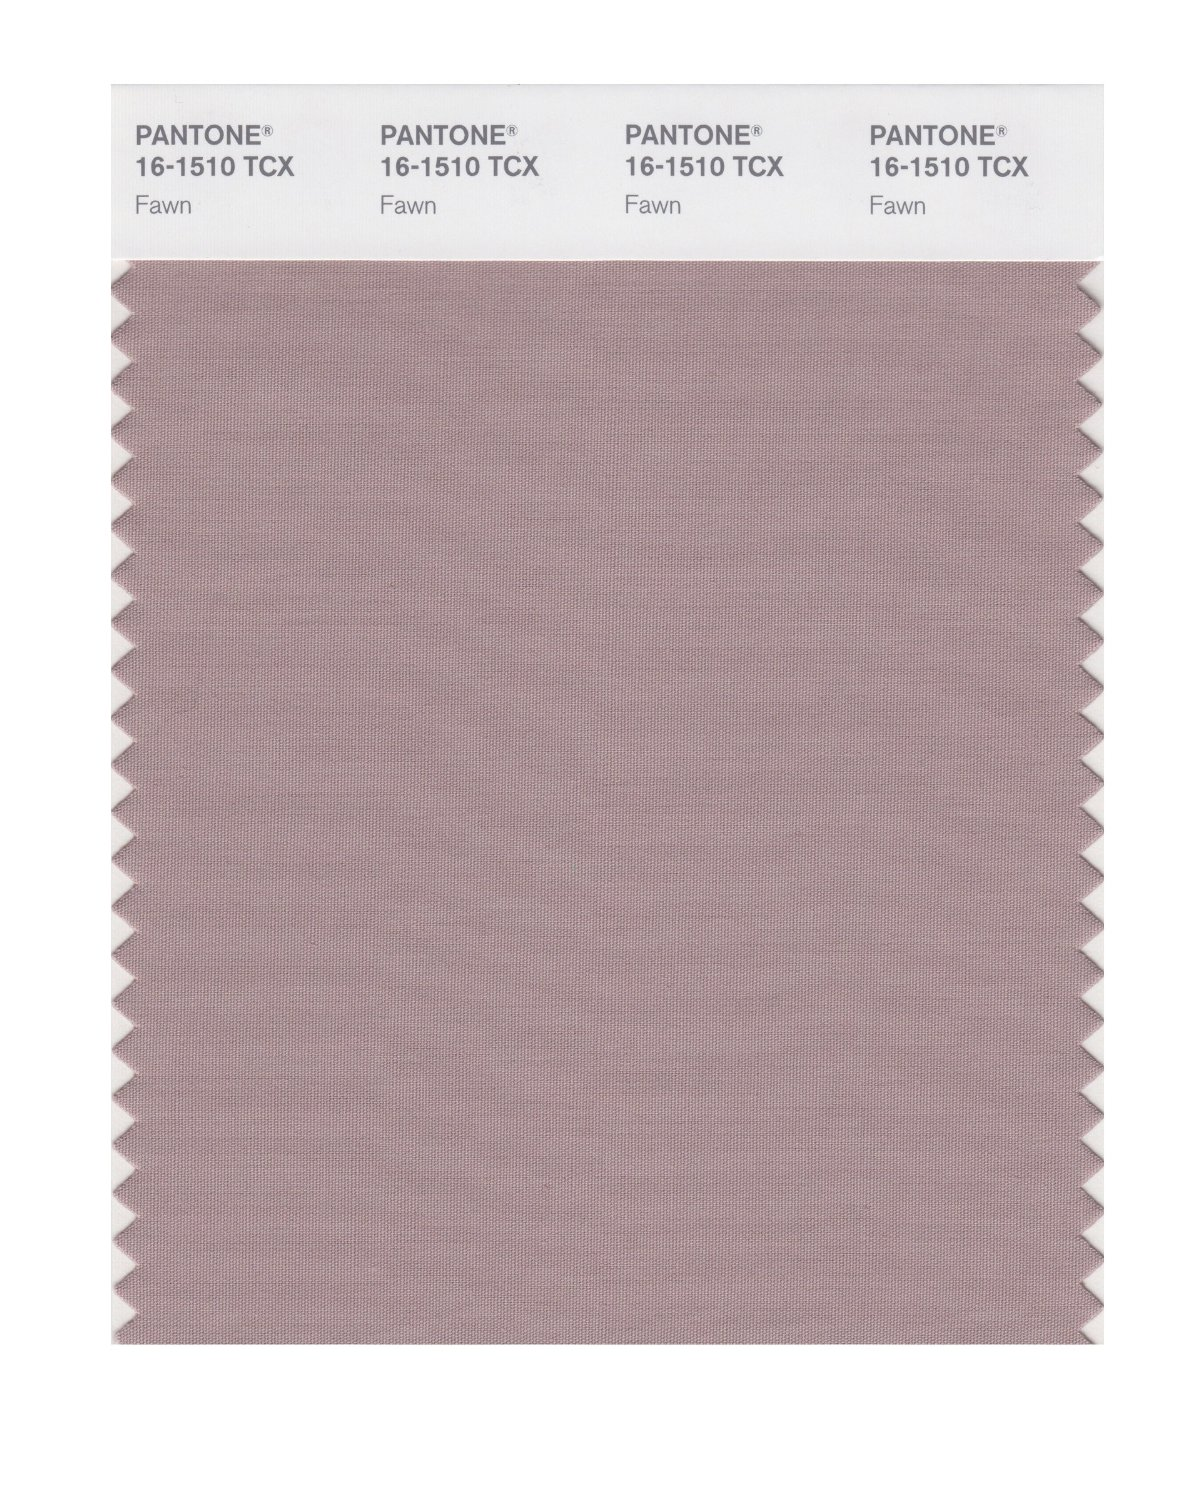 Pantone Smart Swatch 16-1510 Fawn